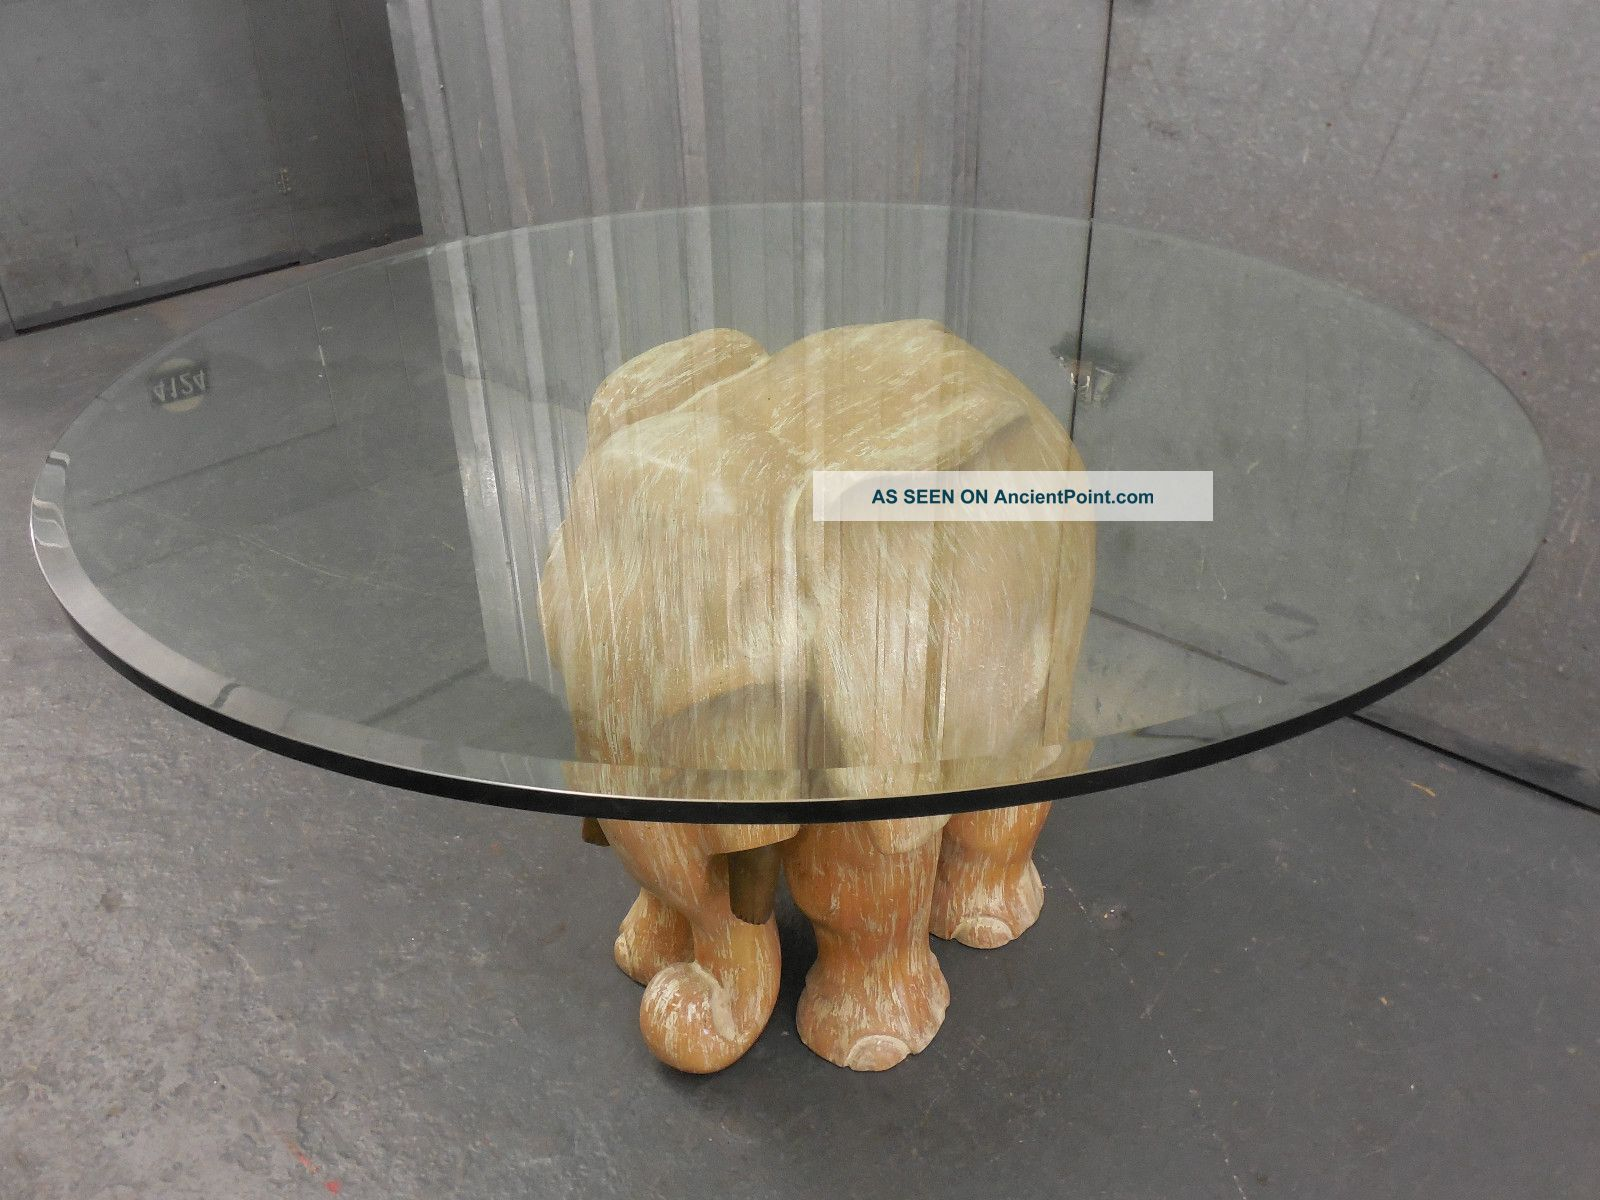 Cerused Wood Sculptural Carved Elephant Table Base (glass Top Optional)